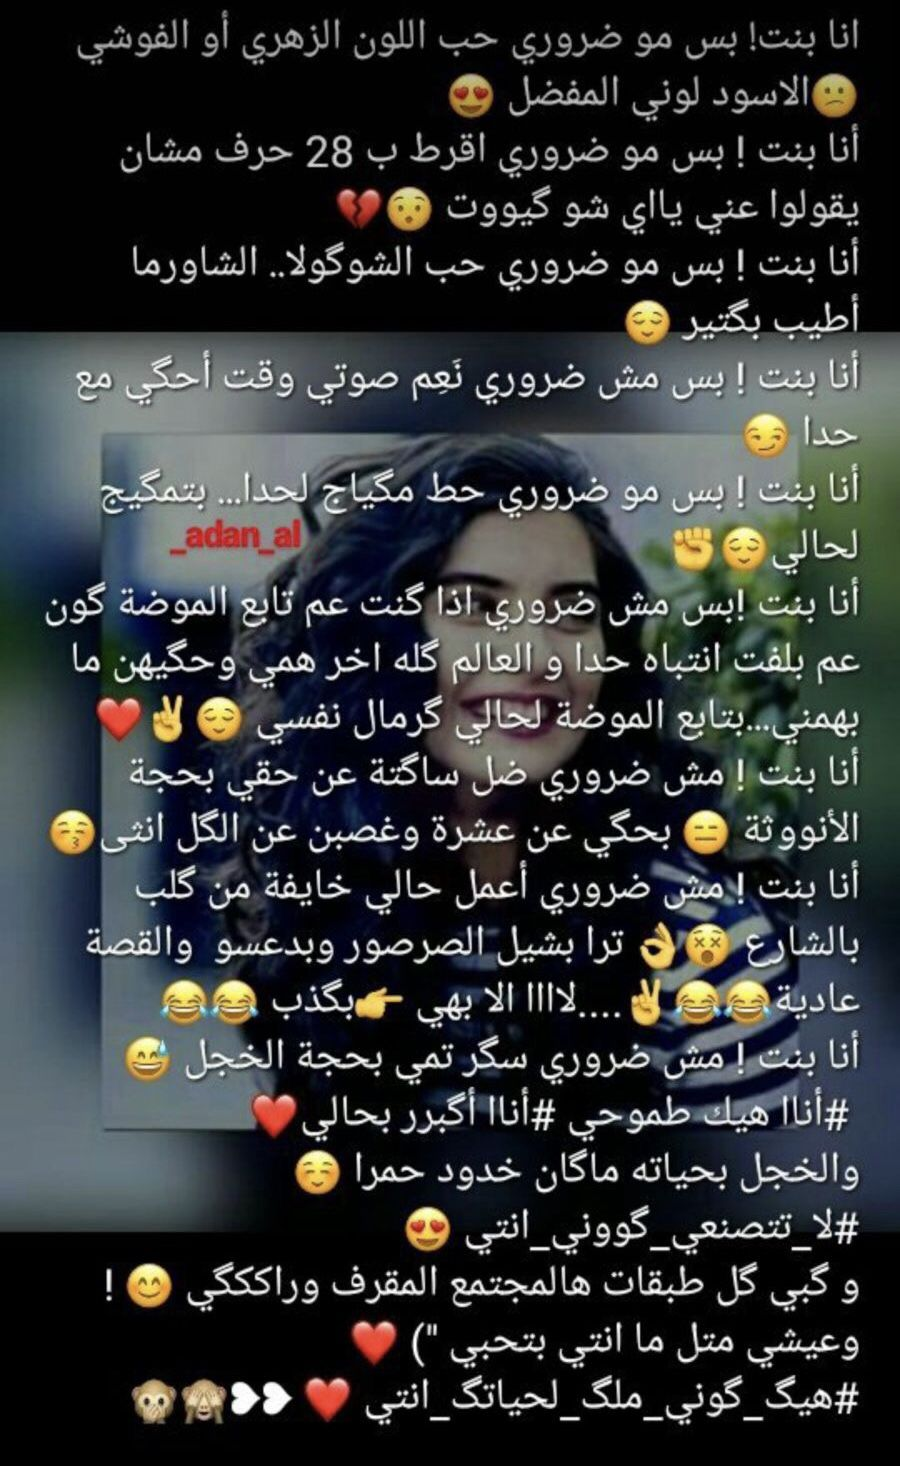 Pin By Lina Outman On Arabic Quotes Arabic Funny Arabic Quotes Words